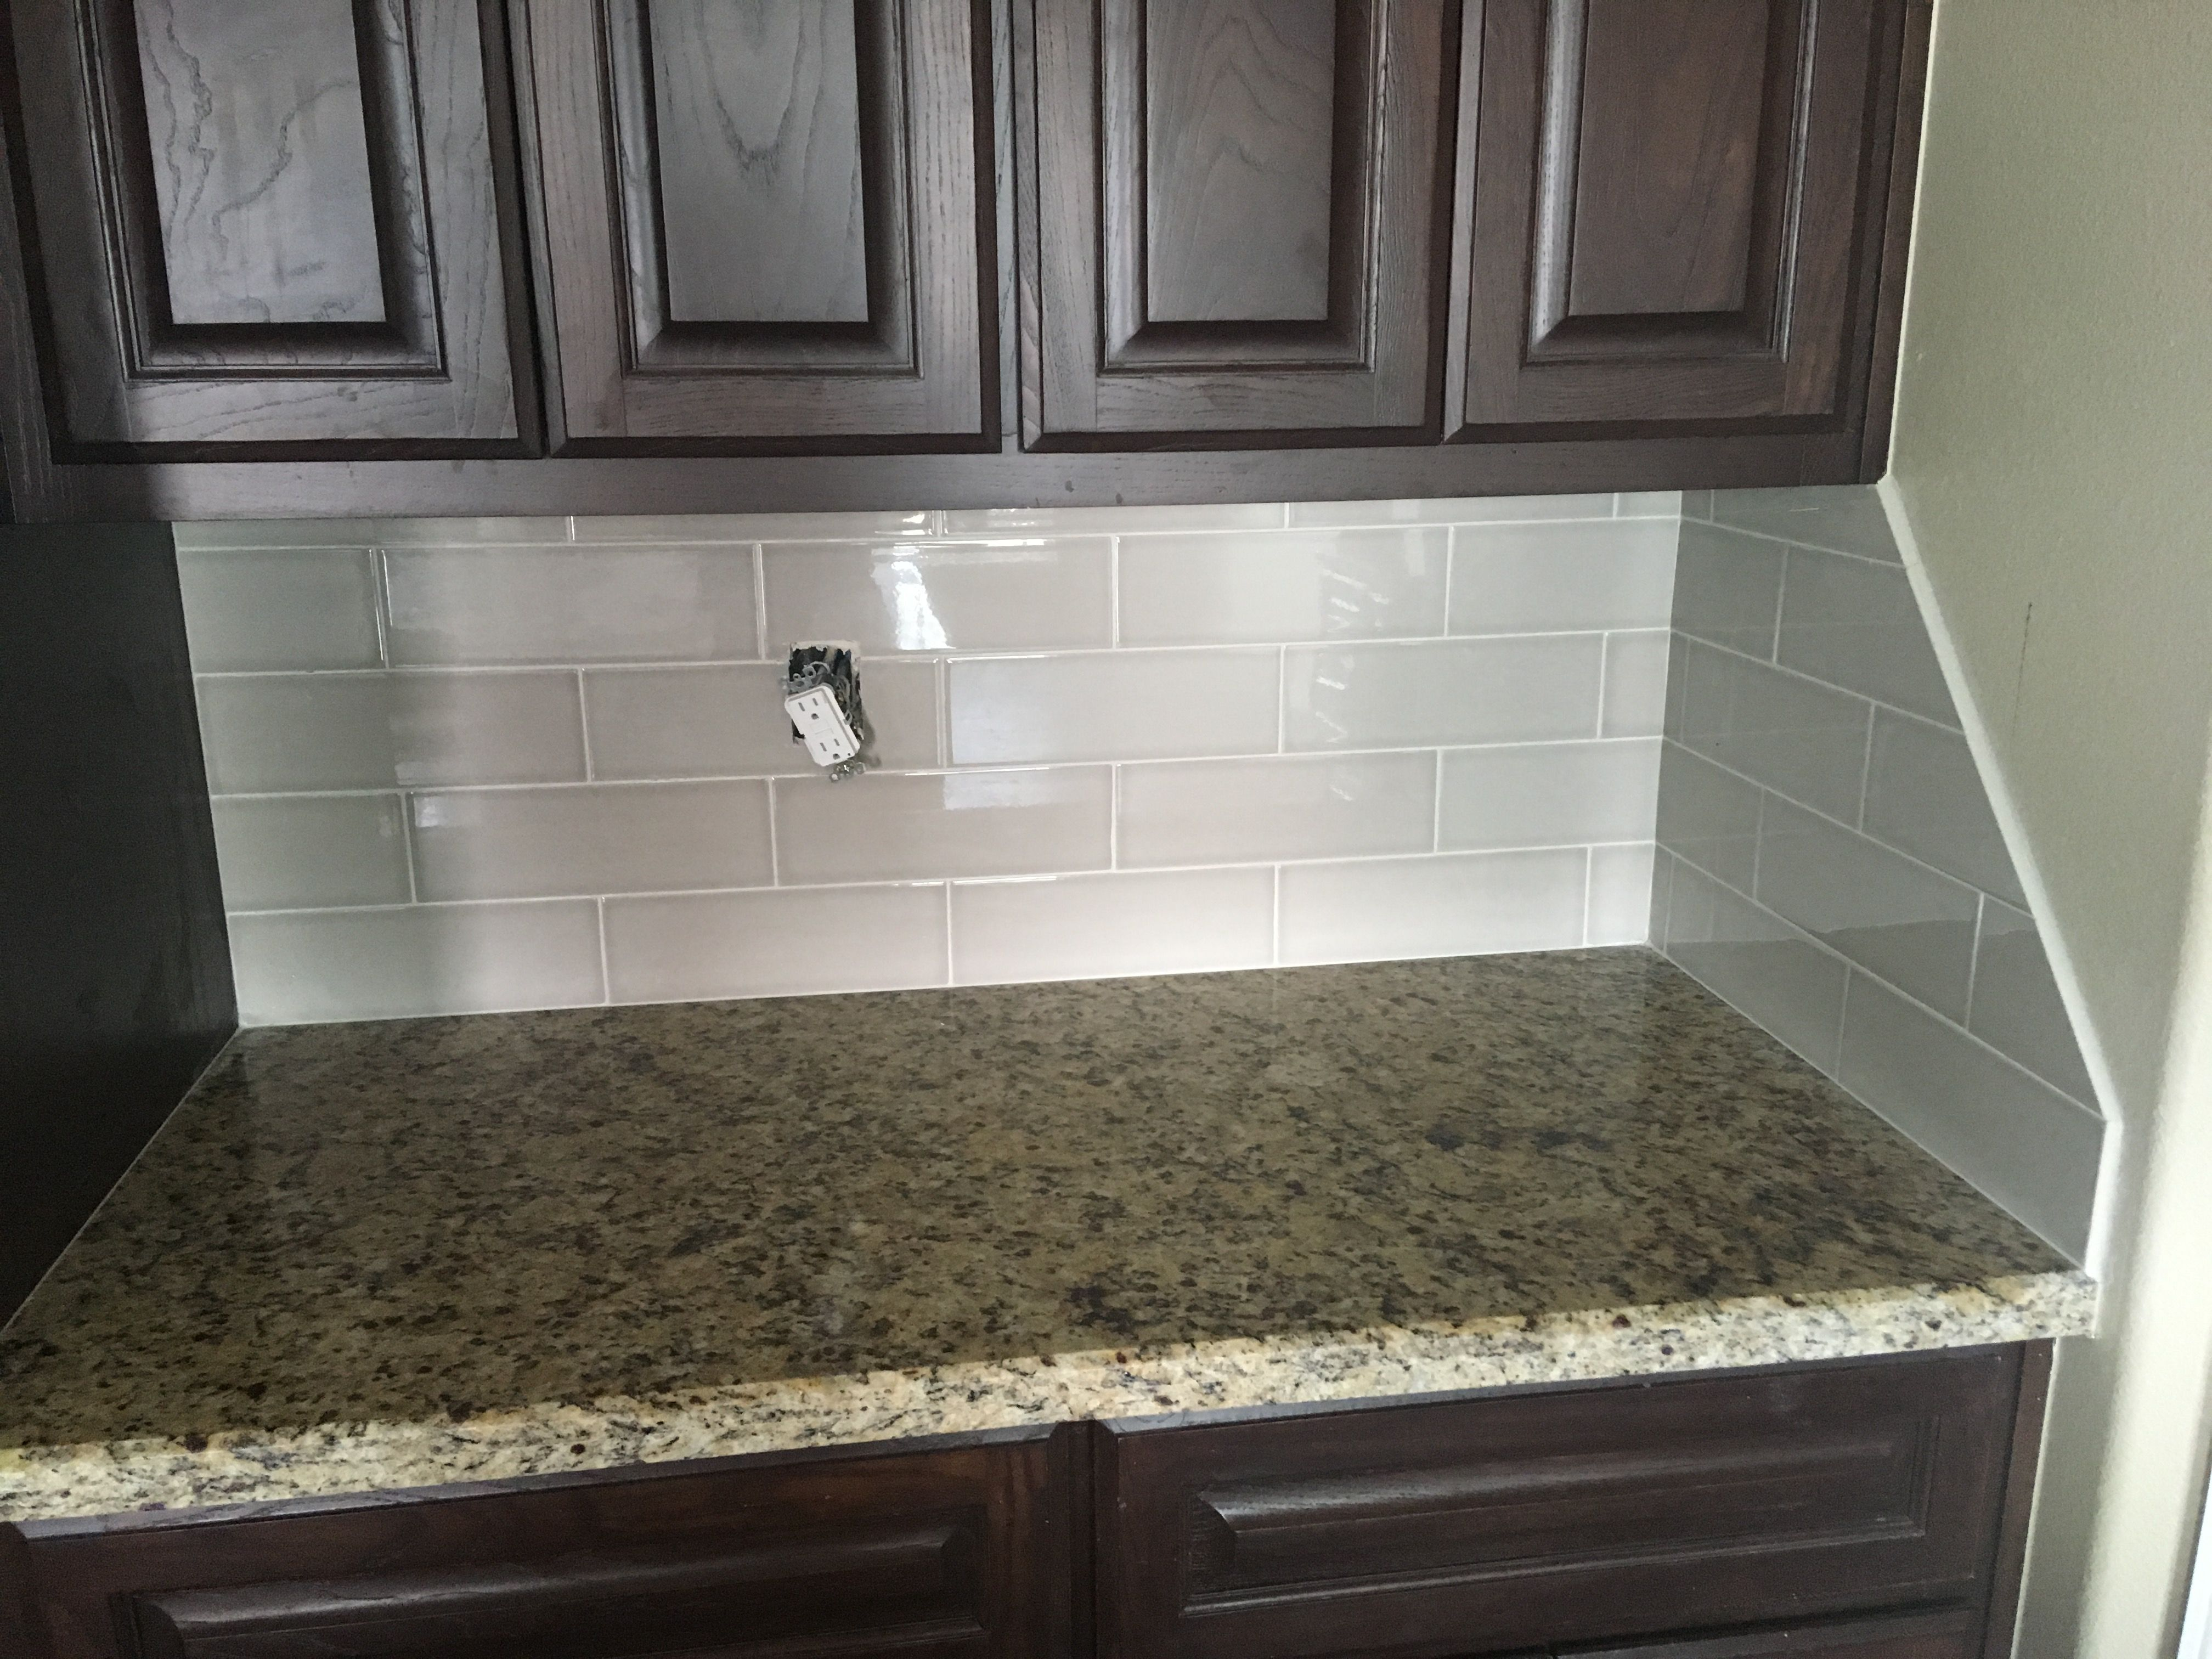 - Angled Backsplash At The End Of The Wall. Allen & Roth Large